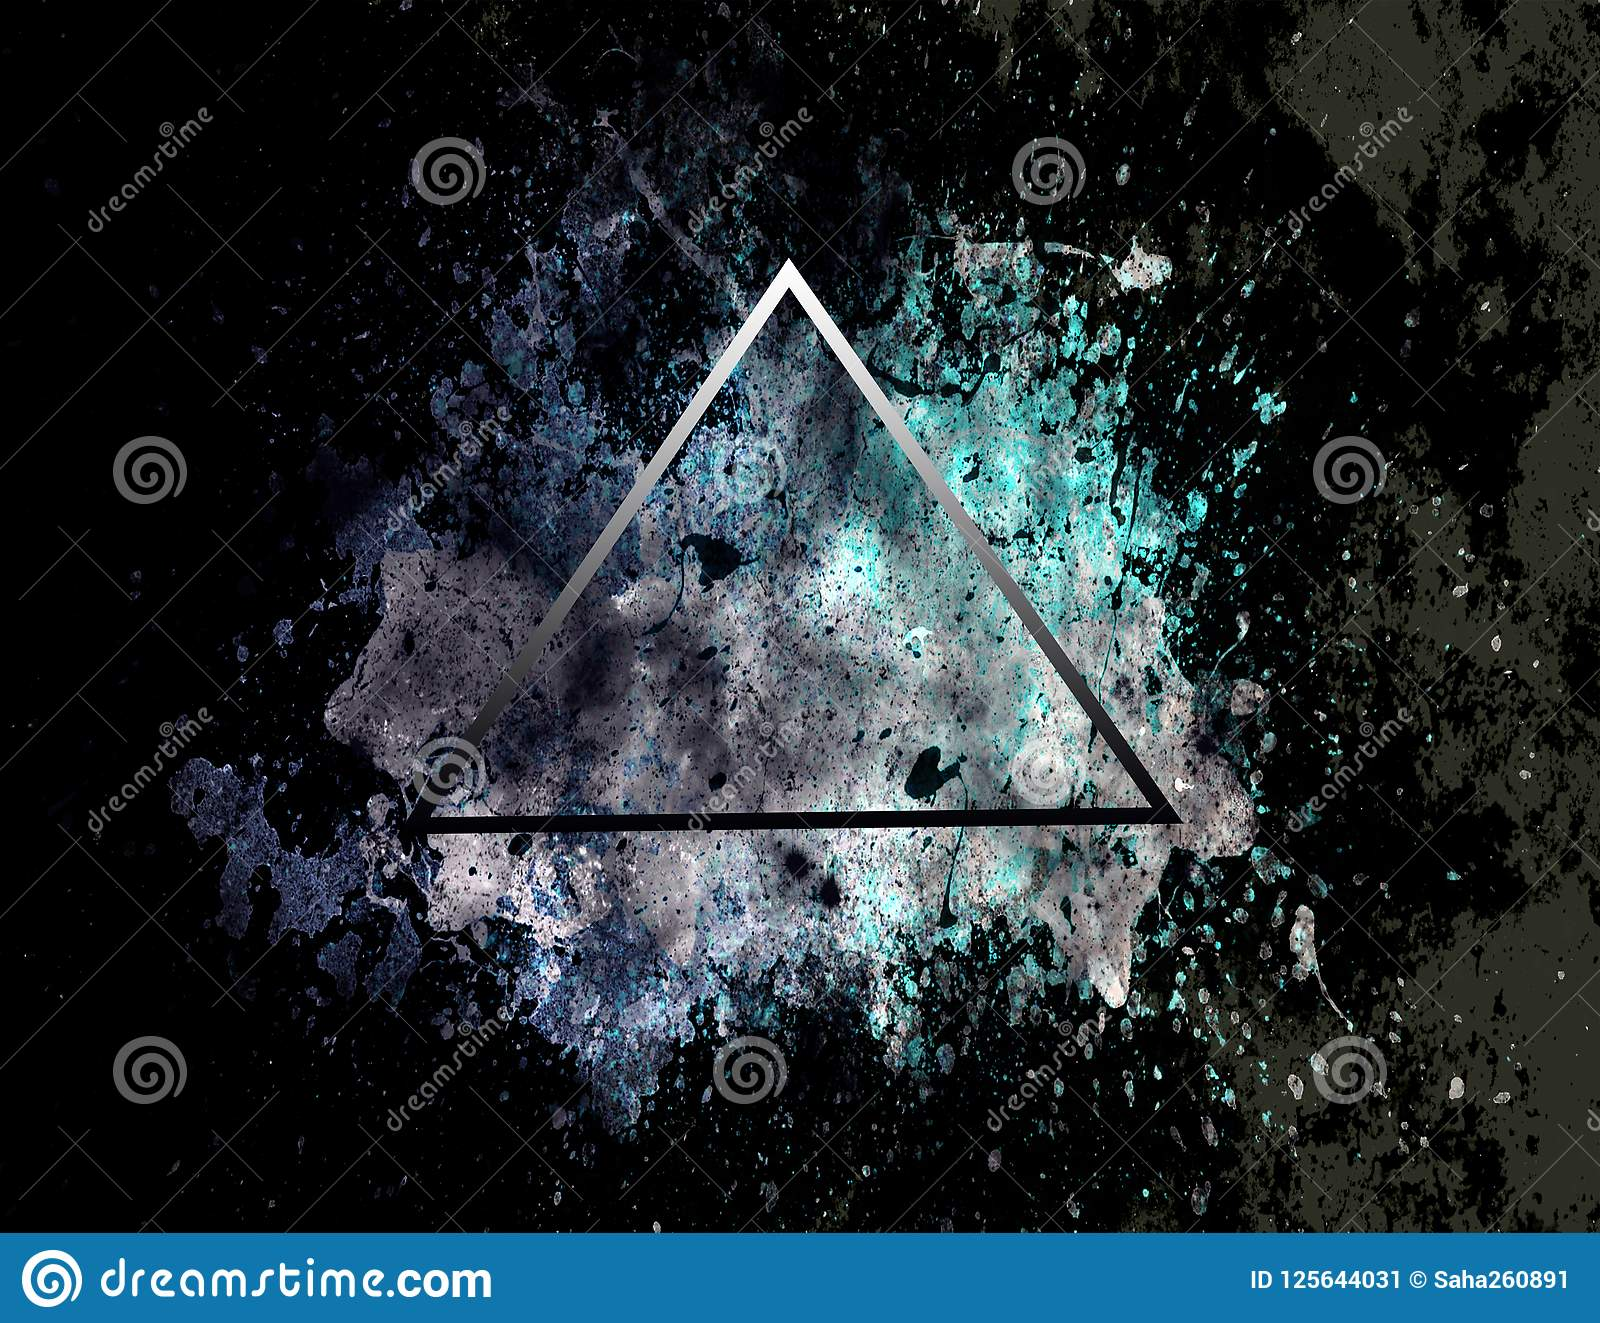 Abstract Dark Background Geometric Texture Triangle Backgrounds